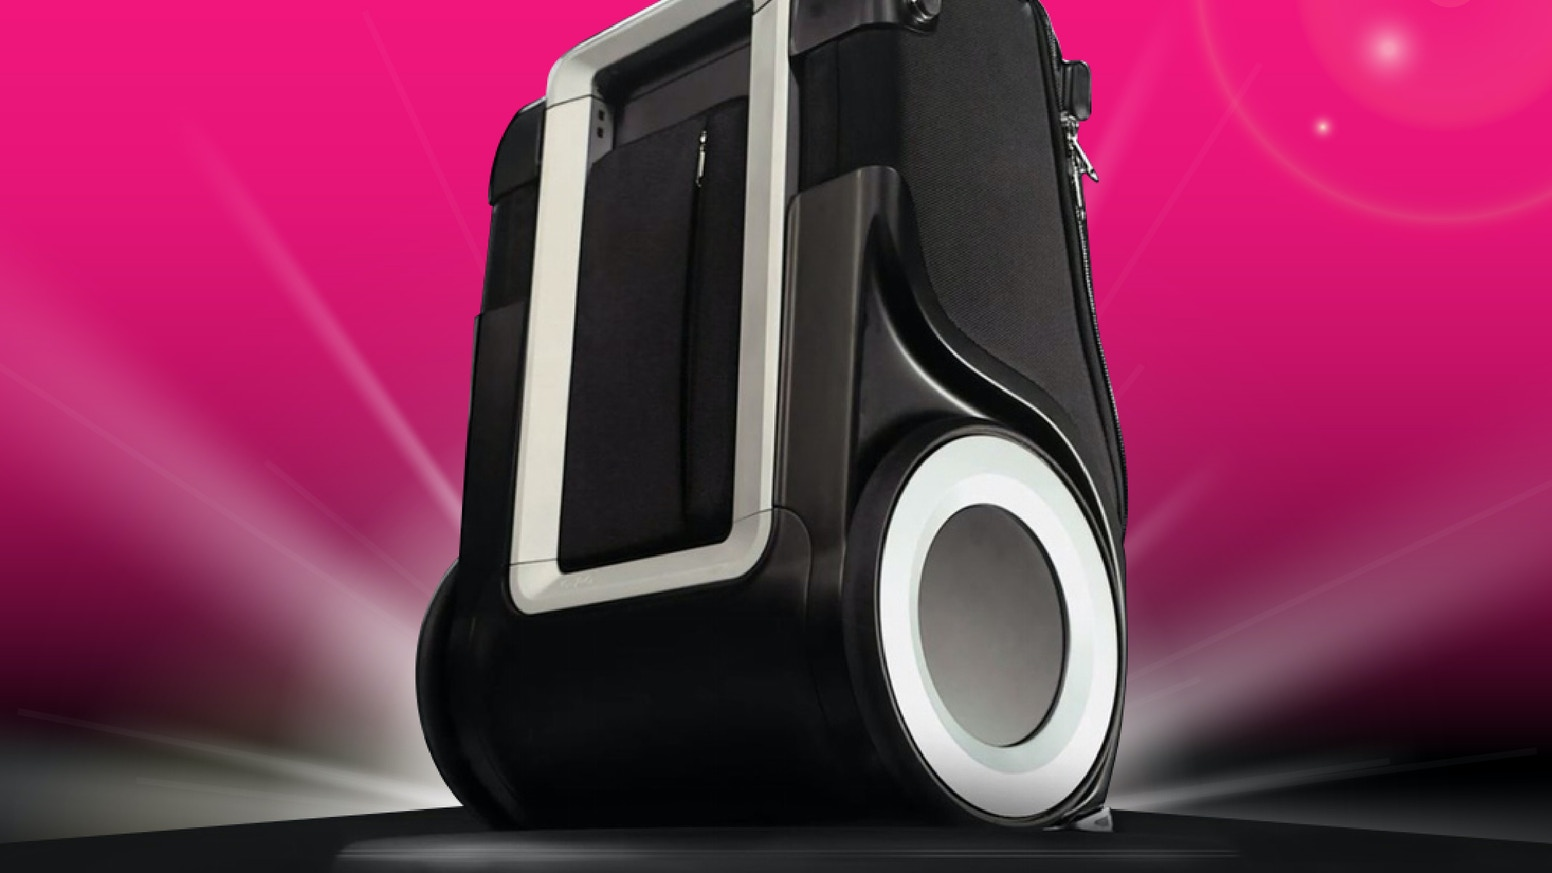 The world's best carry-on luggage - its patented over-sized wheels change EVERYTHING! More than a suitcase, it's a travel companion!